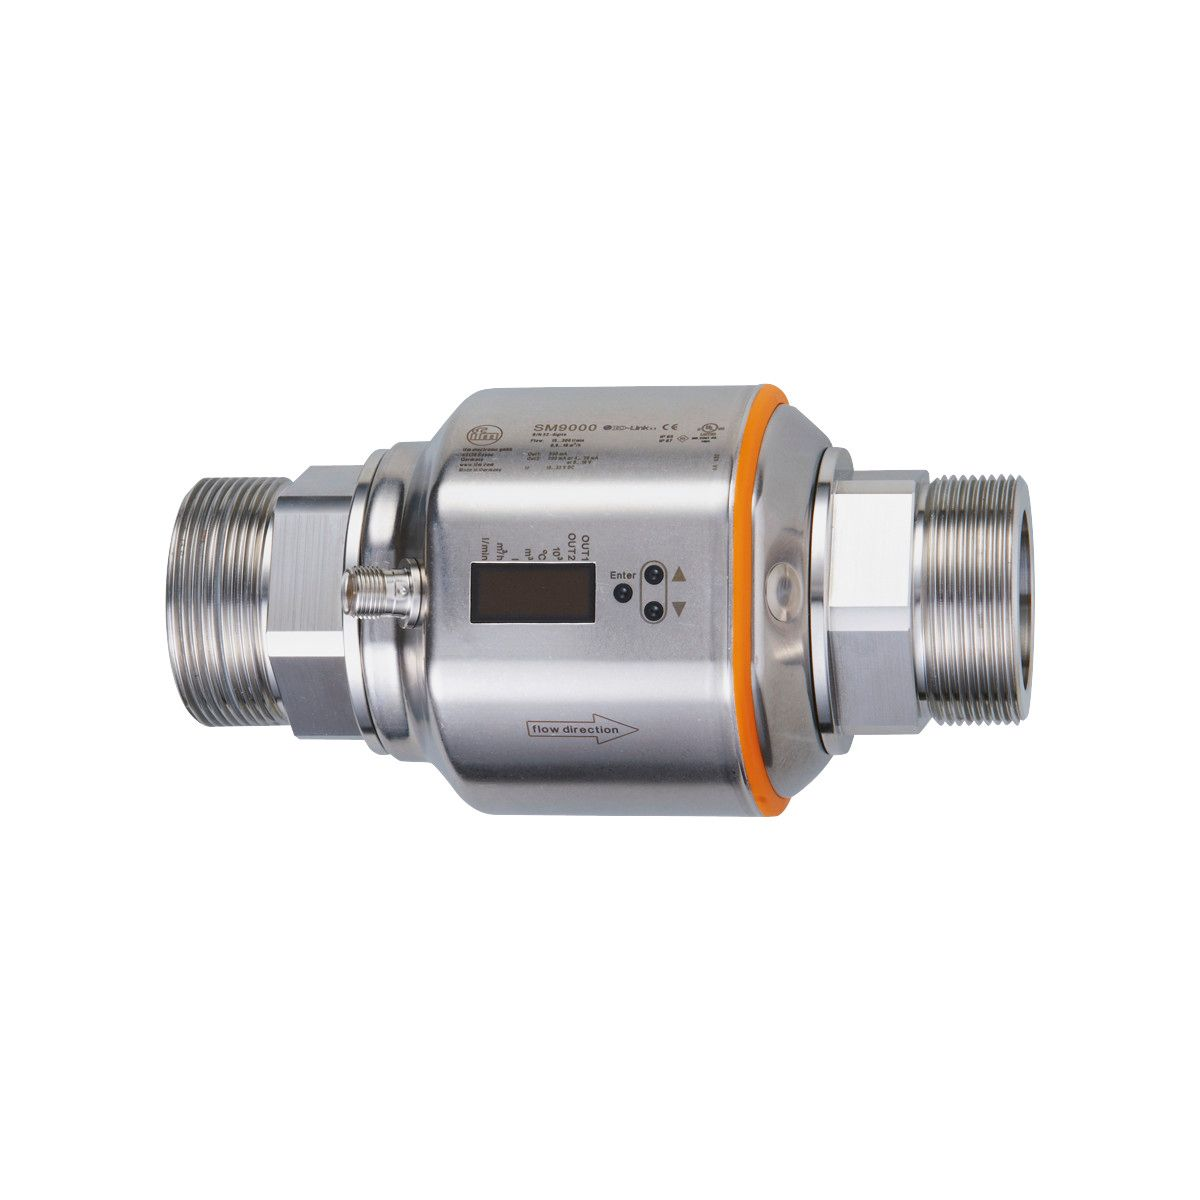 Sm9001 Magnetic Inductive Flow Meter Ifm Electronic Vision X Led Wiring Diagram